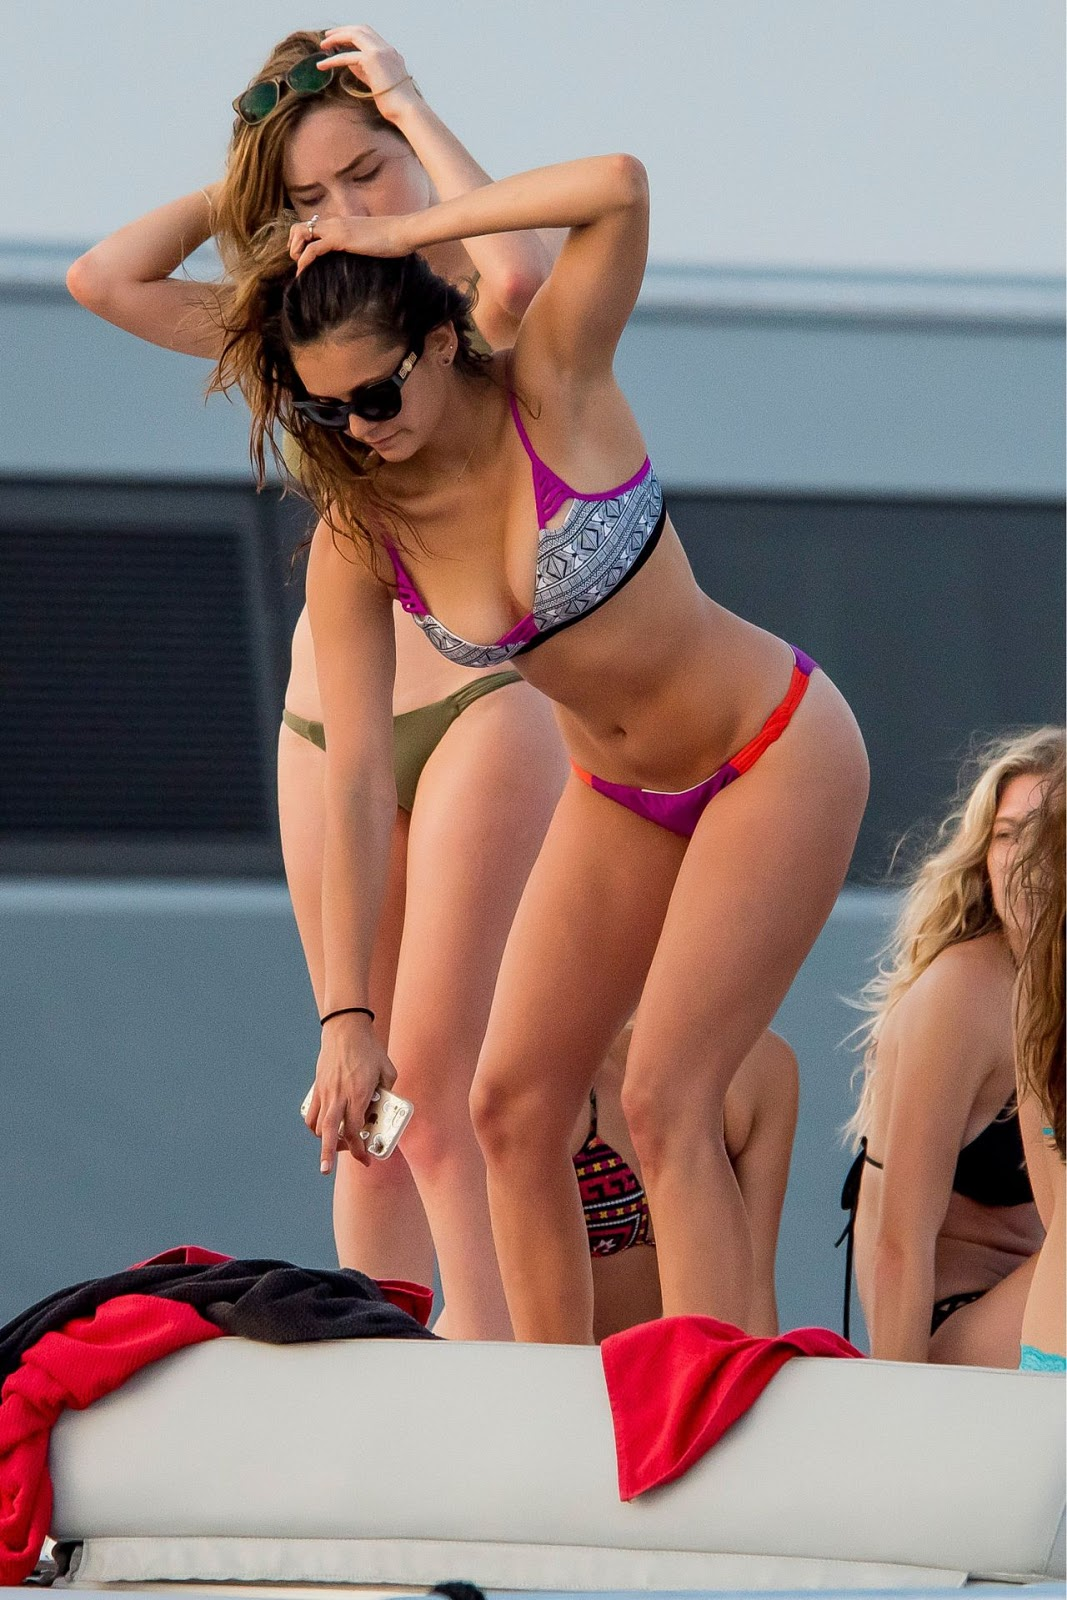 Bikini clad Nina Dobrev parties with pals in Saint Tropez